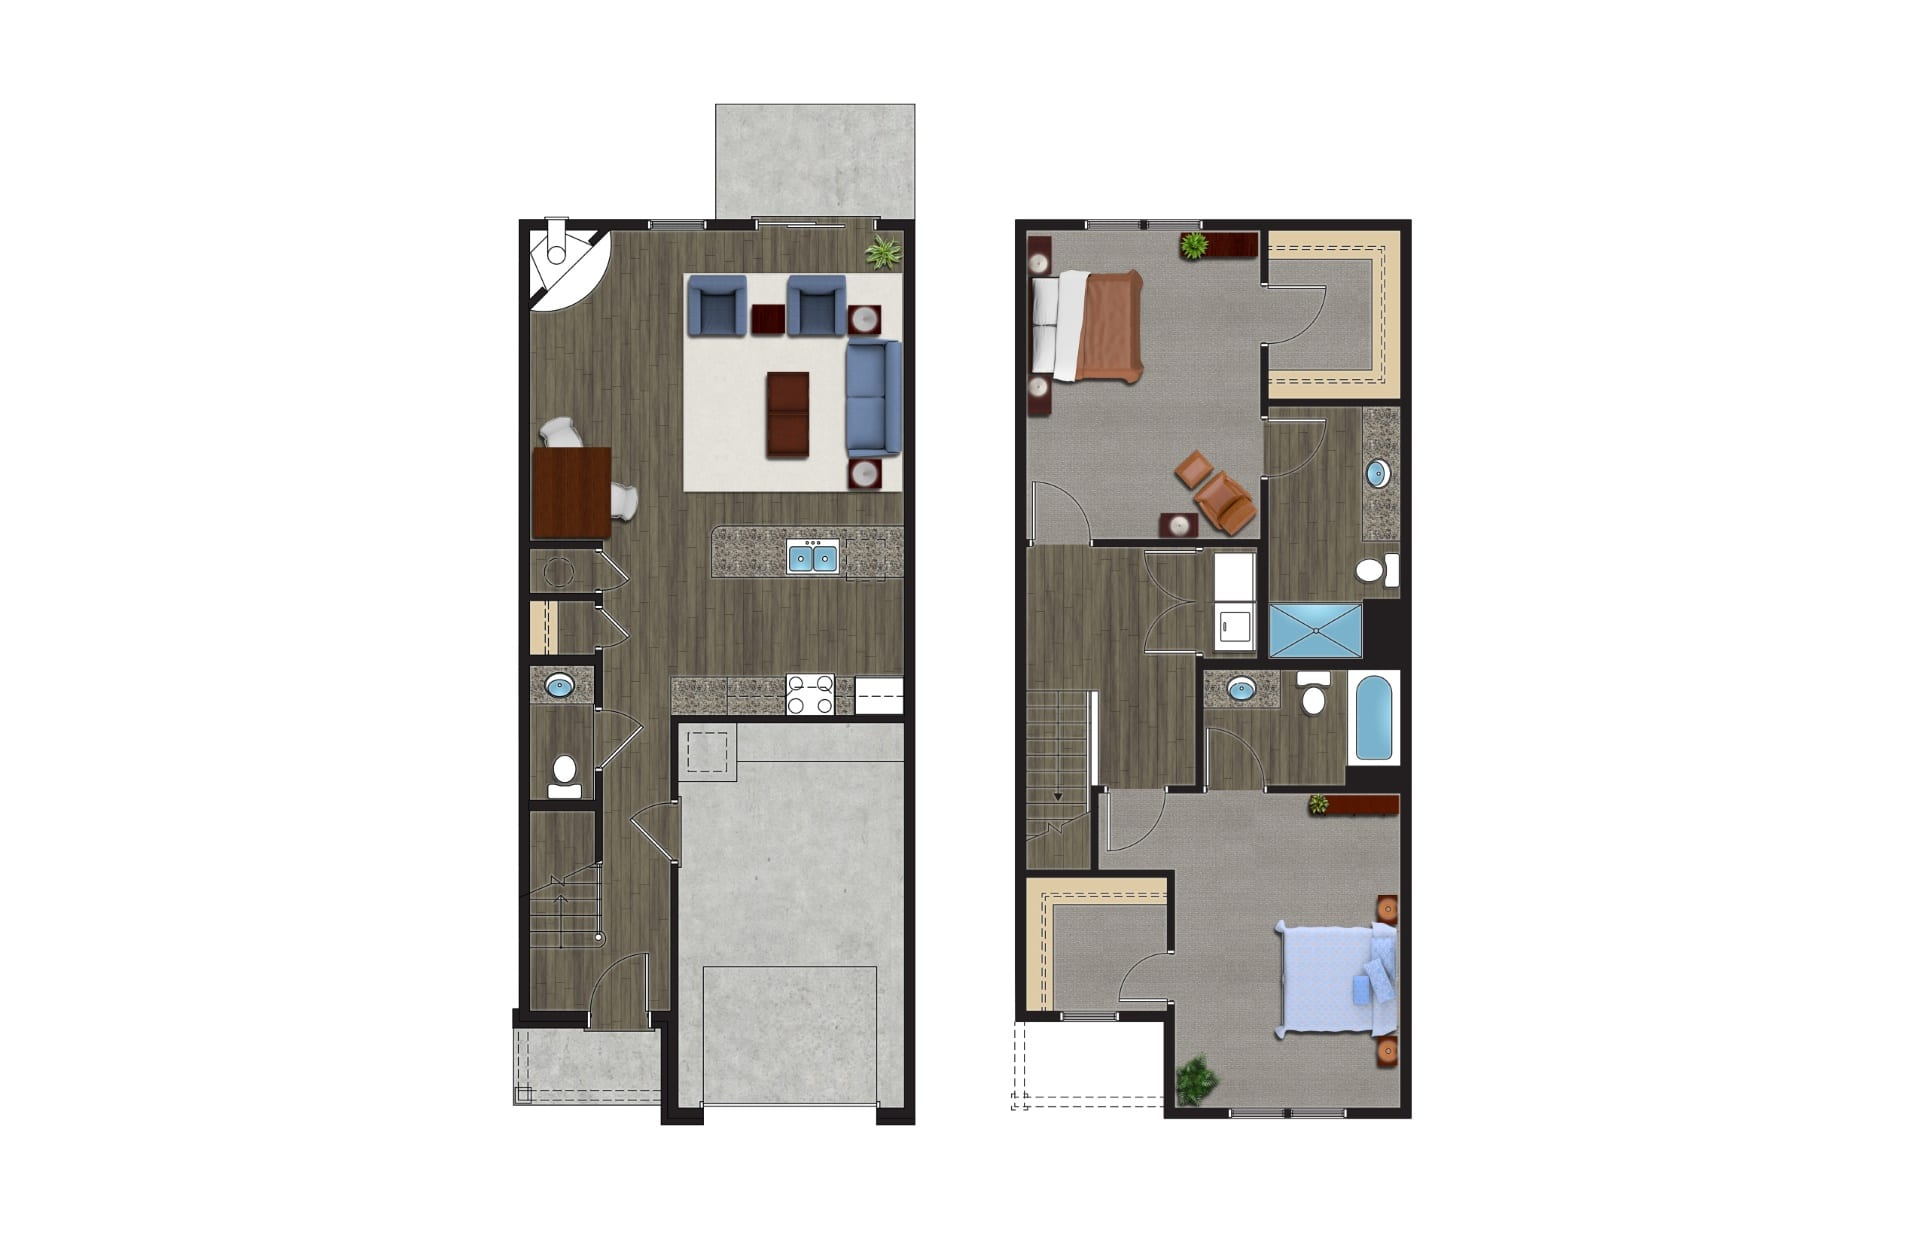 A Floor Plan of The Kodiak, Luxury Townhomes with Garages for rent. The 2 Story, 2 Bedroom Townhomes in Orchard Park NY are pet friendly townhomes.